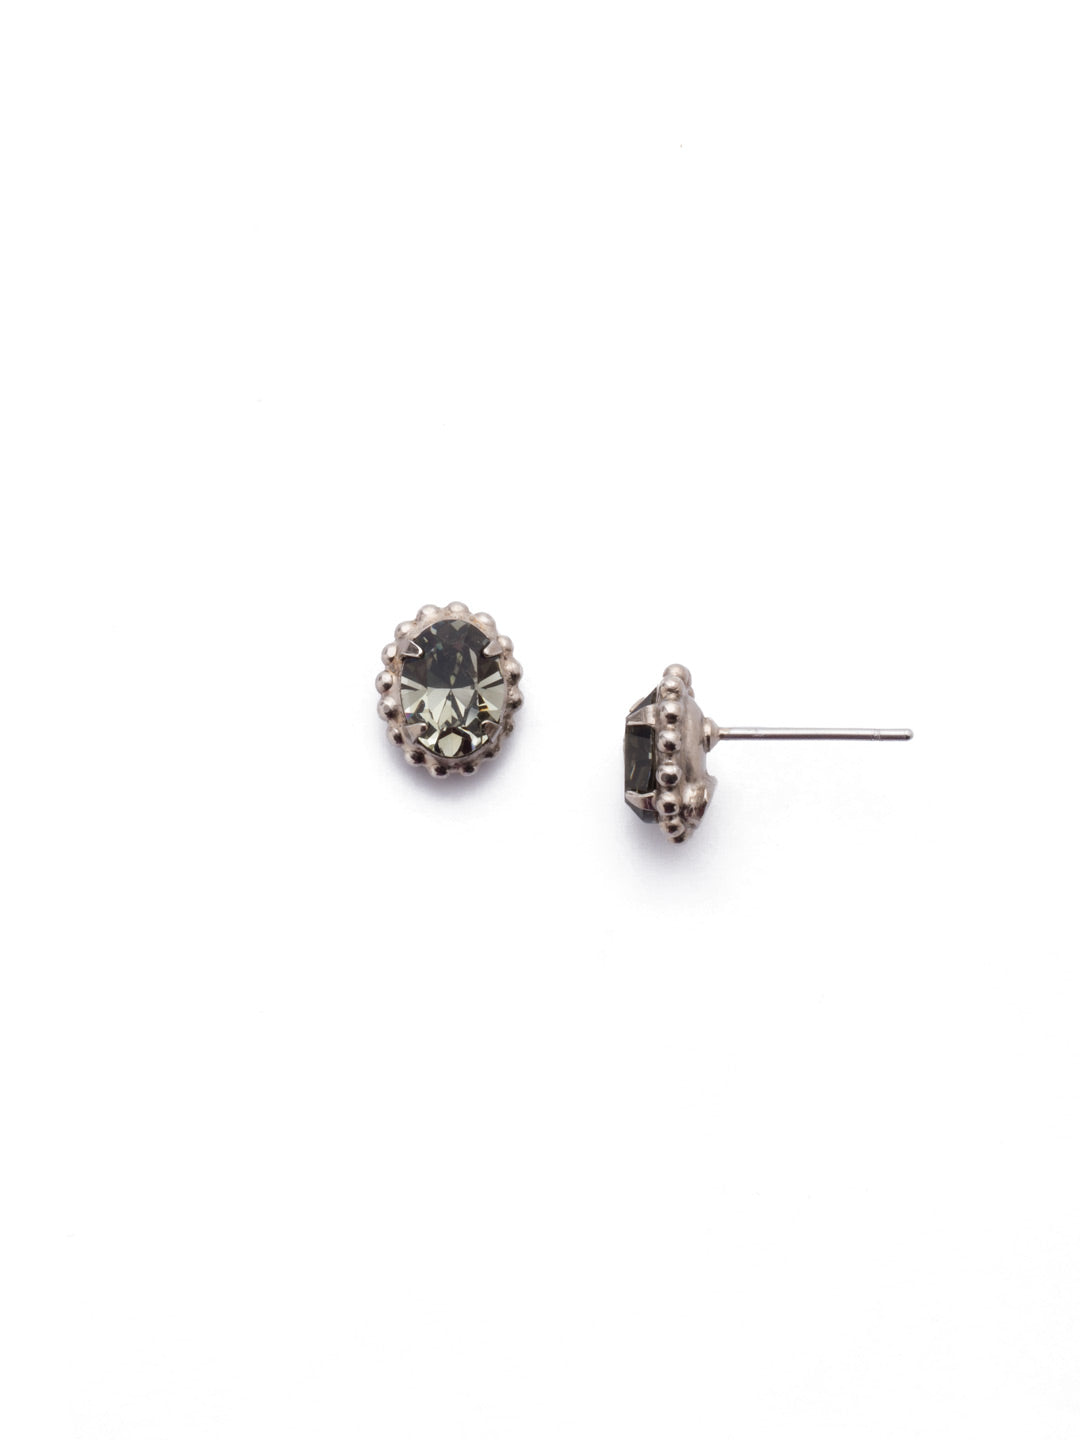 Maisie Stud Earrings - EEH11ASBD